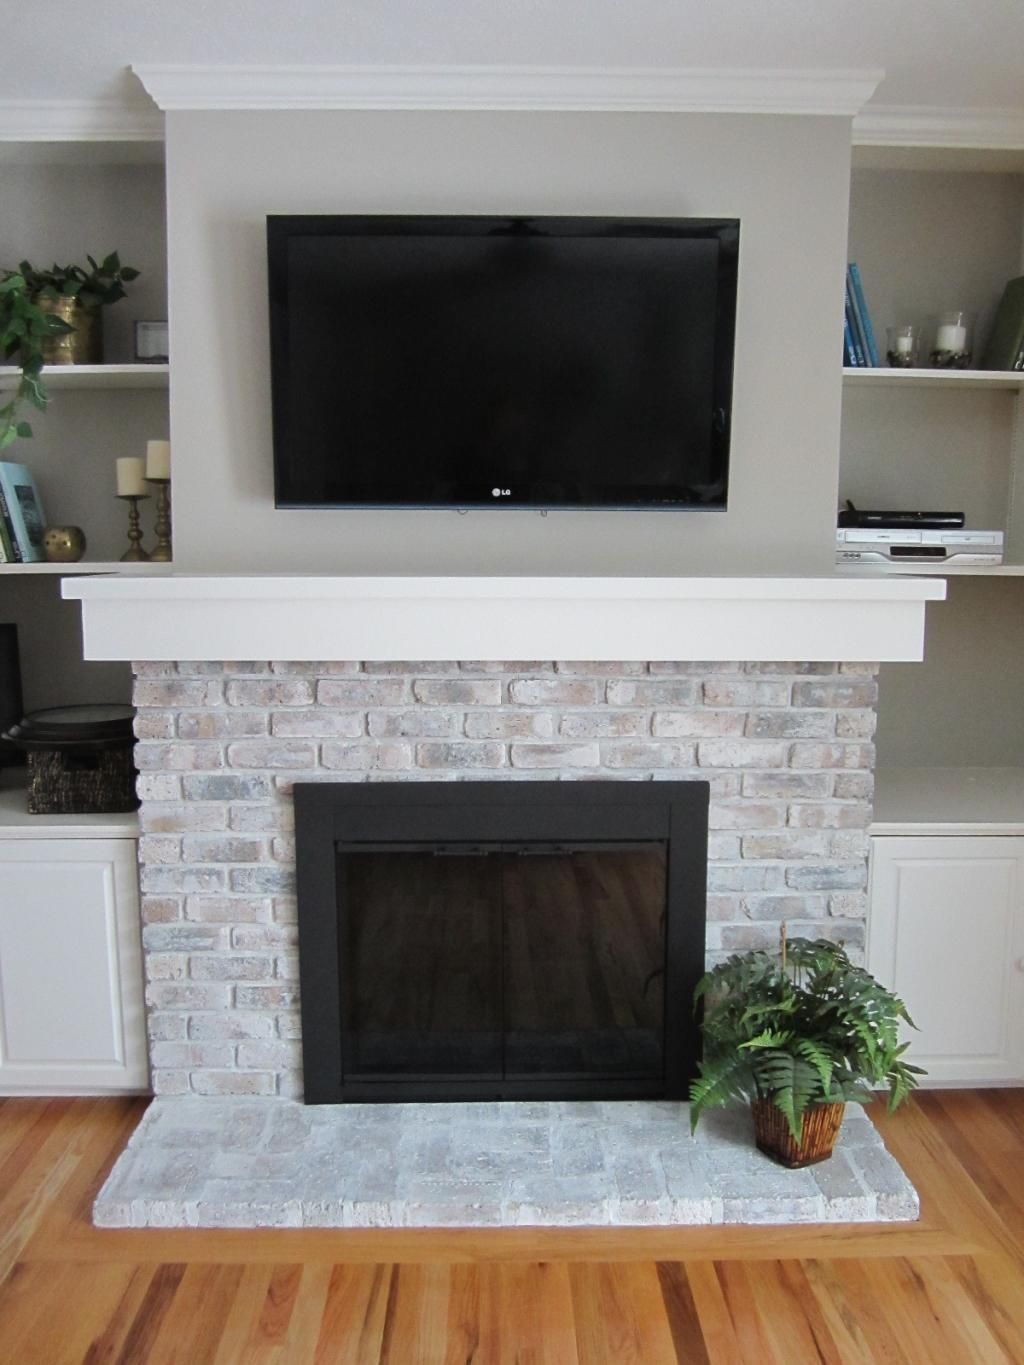 Update Fireplace Doors With Spray Paint Brick Fireplace Makeover